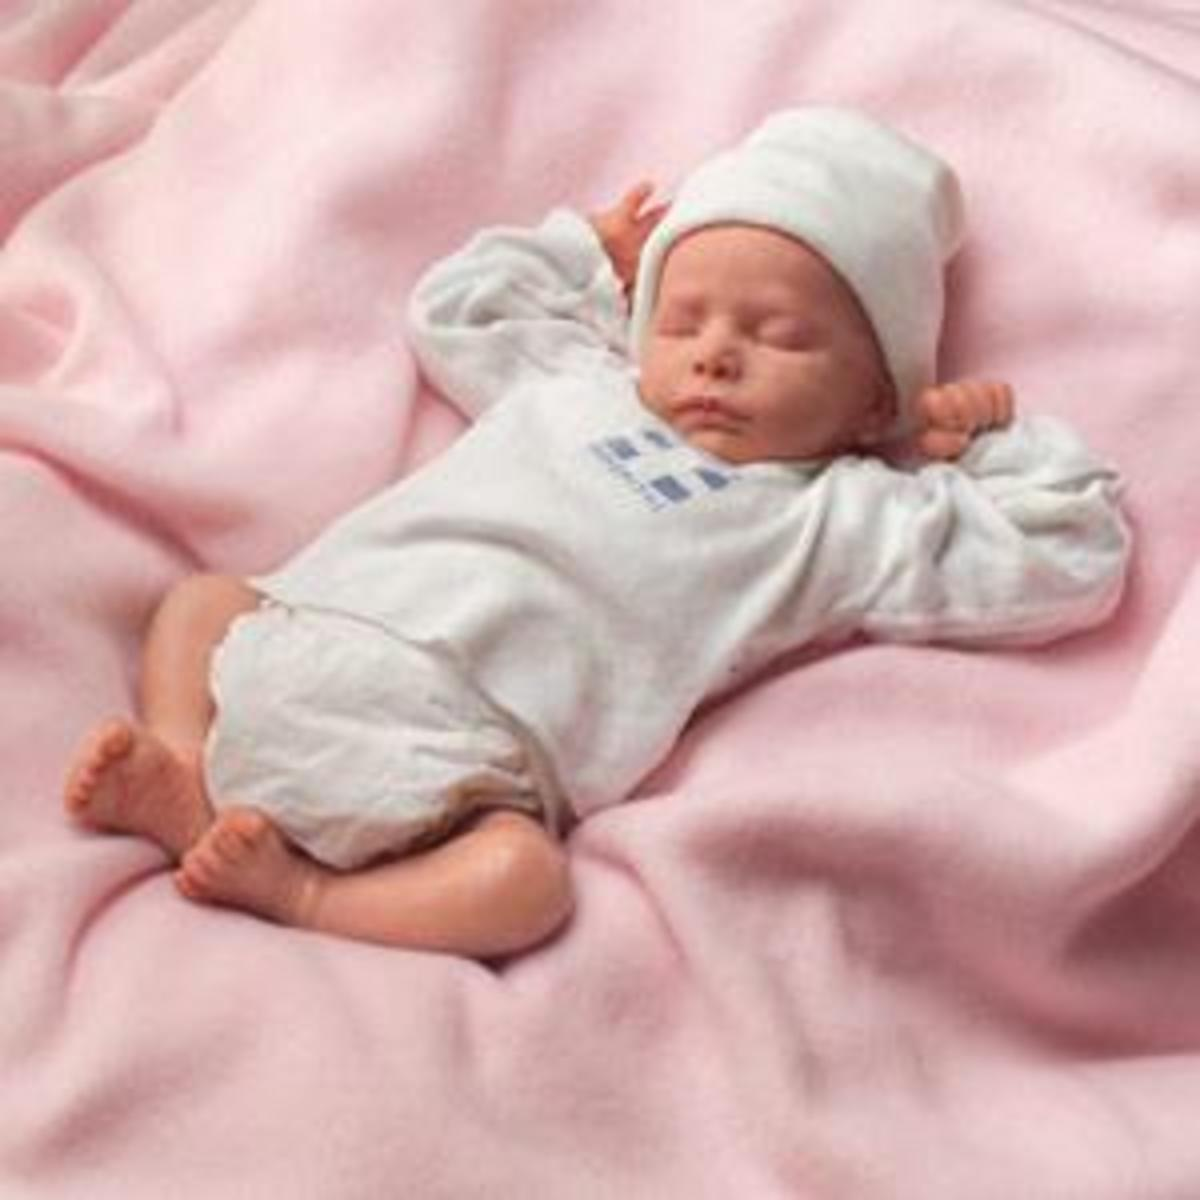 Are The Women Who Buy These Realistic Baby Dolls Normal